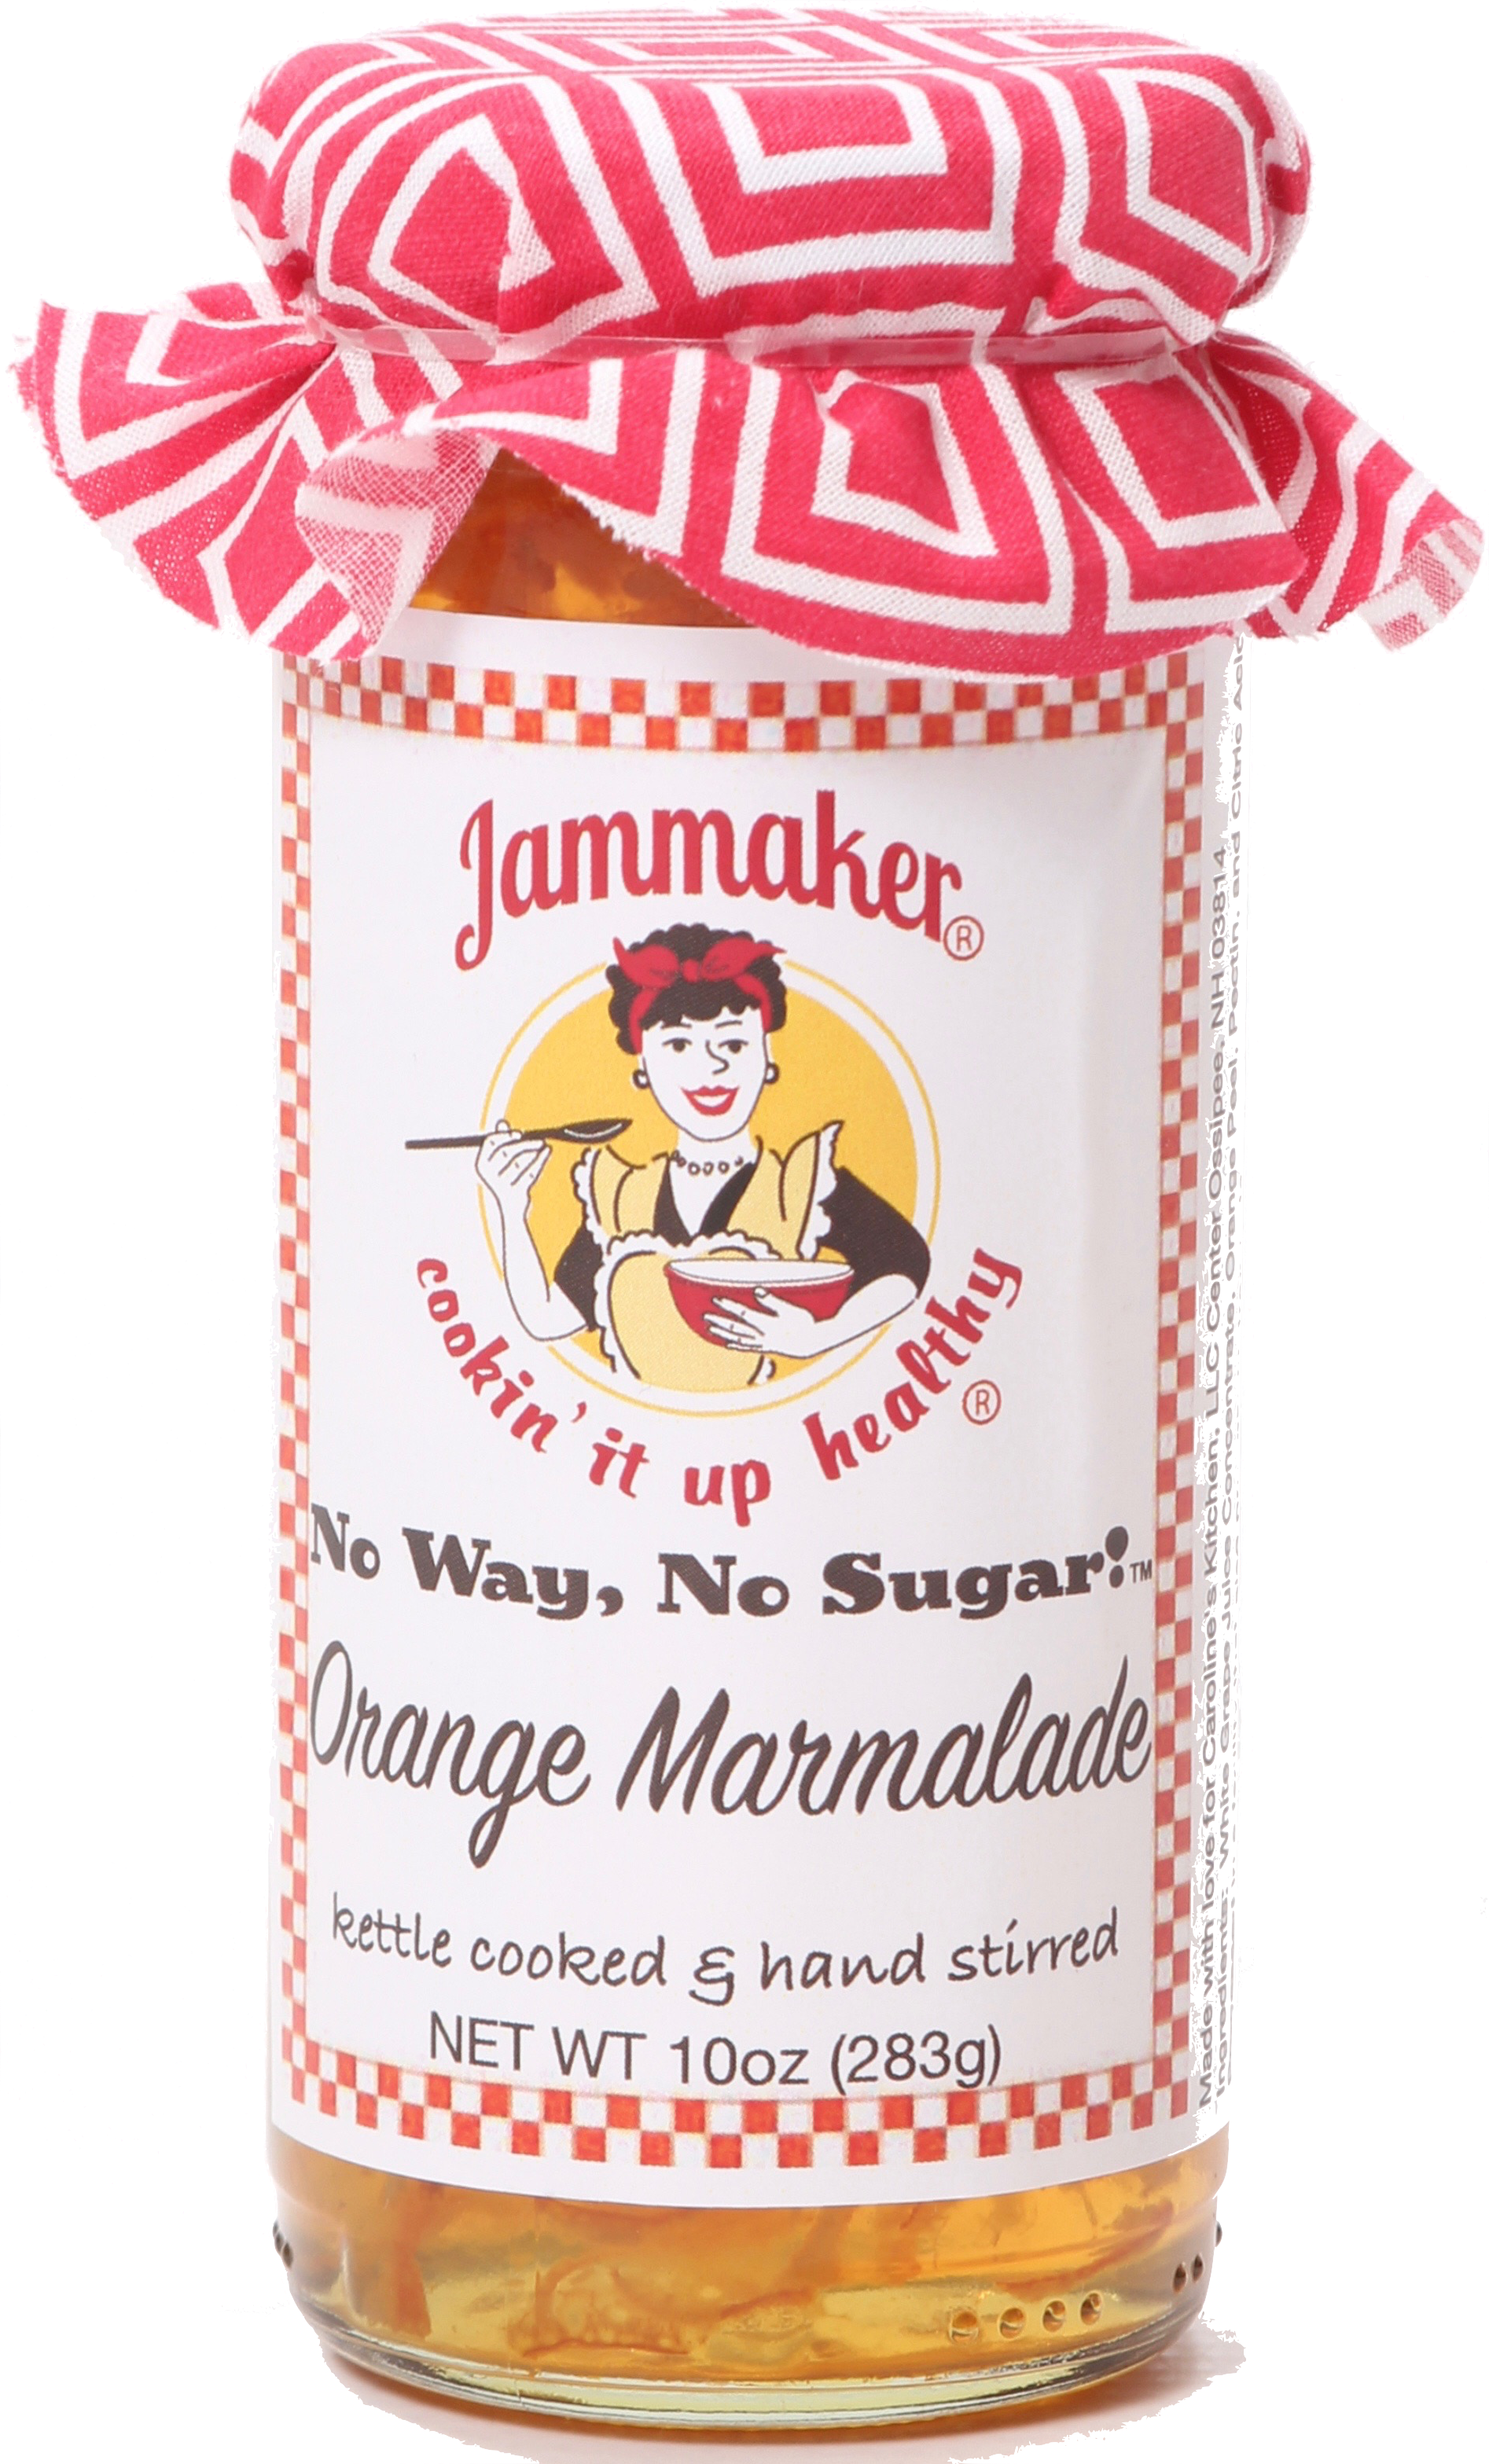 No Way, No Sugar! Orange Marmalade